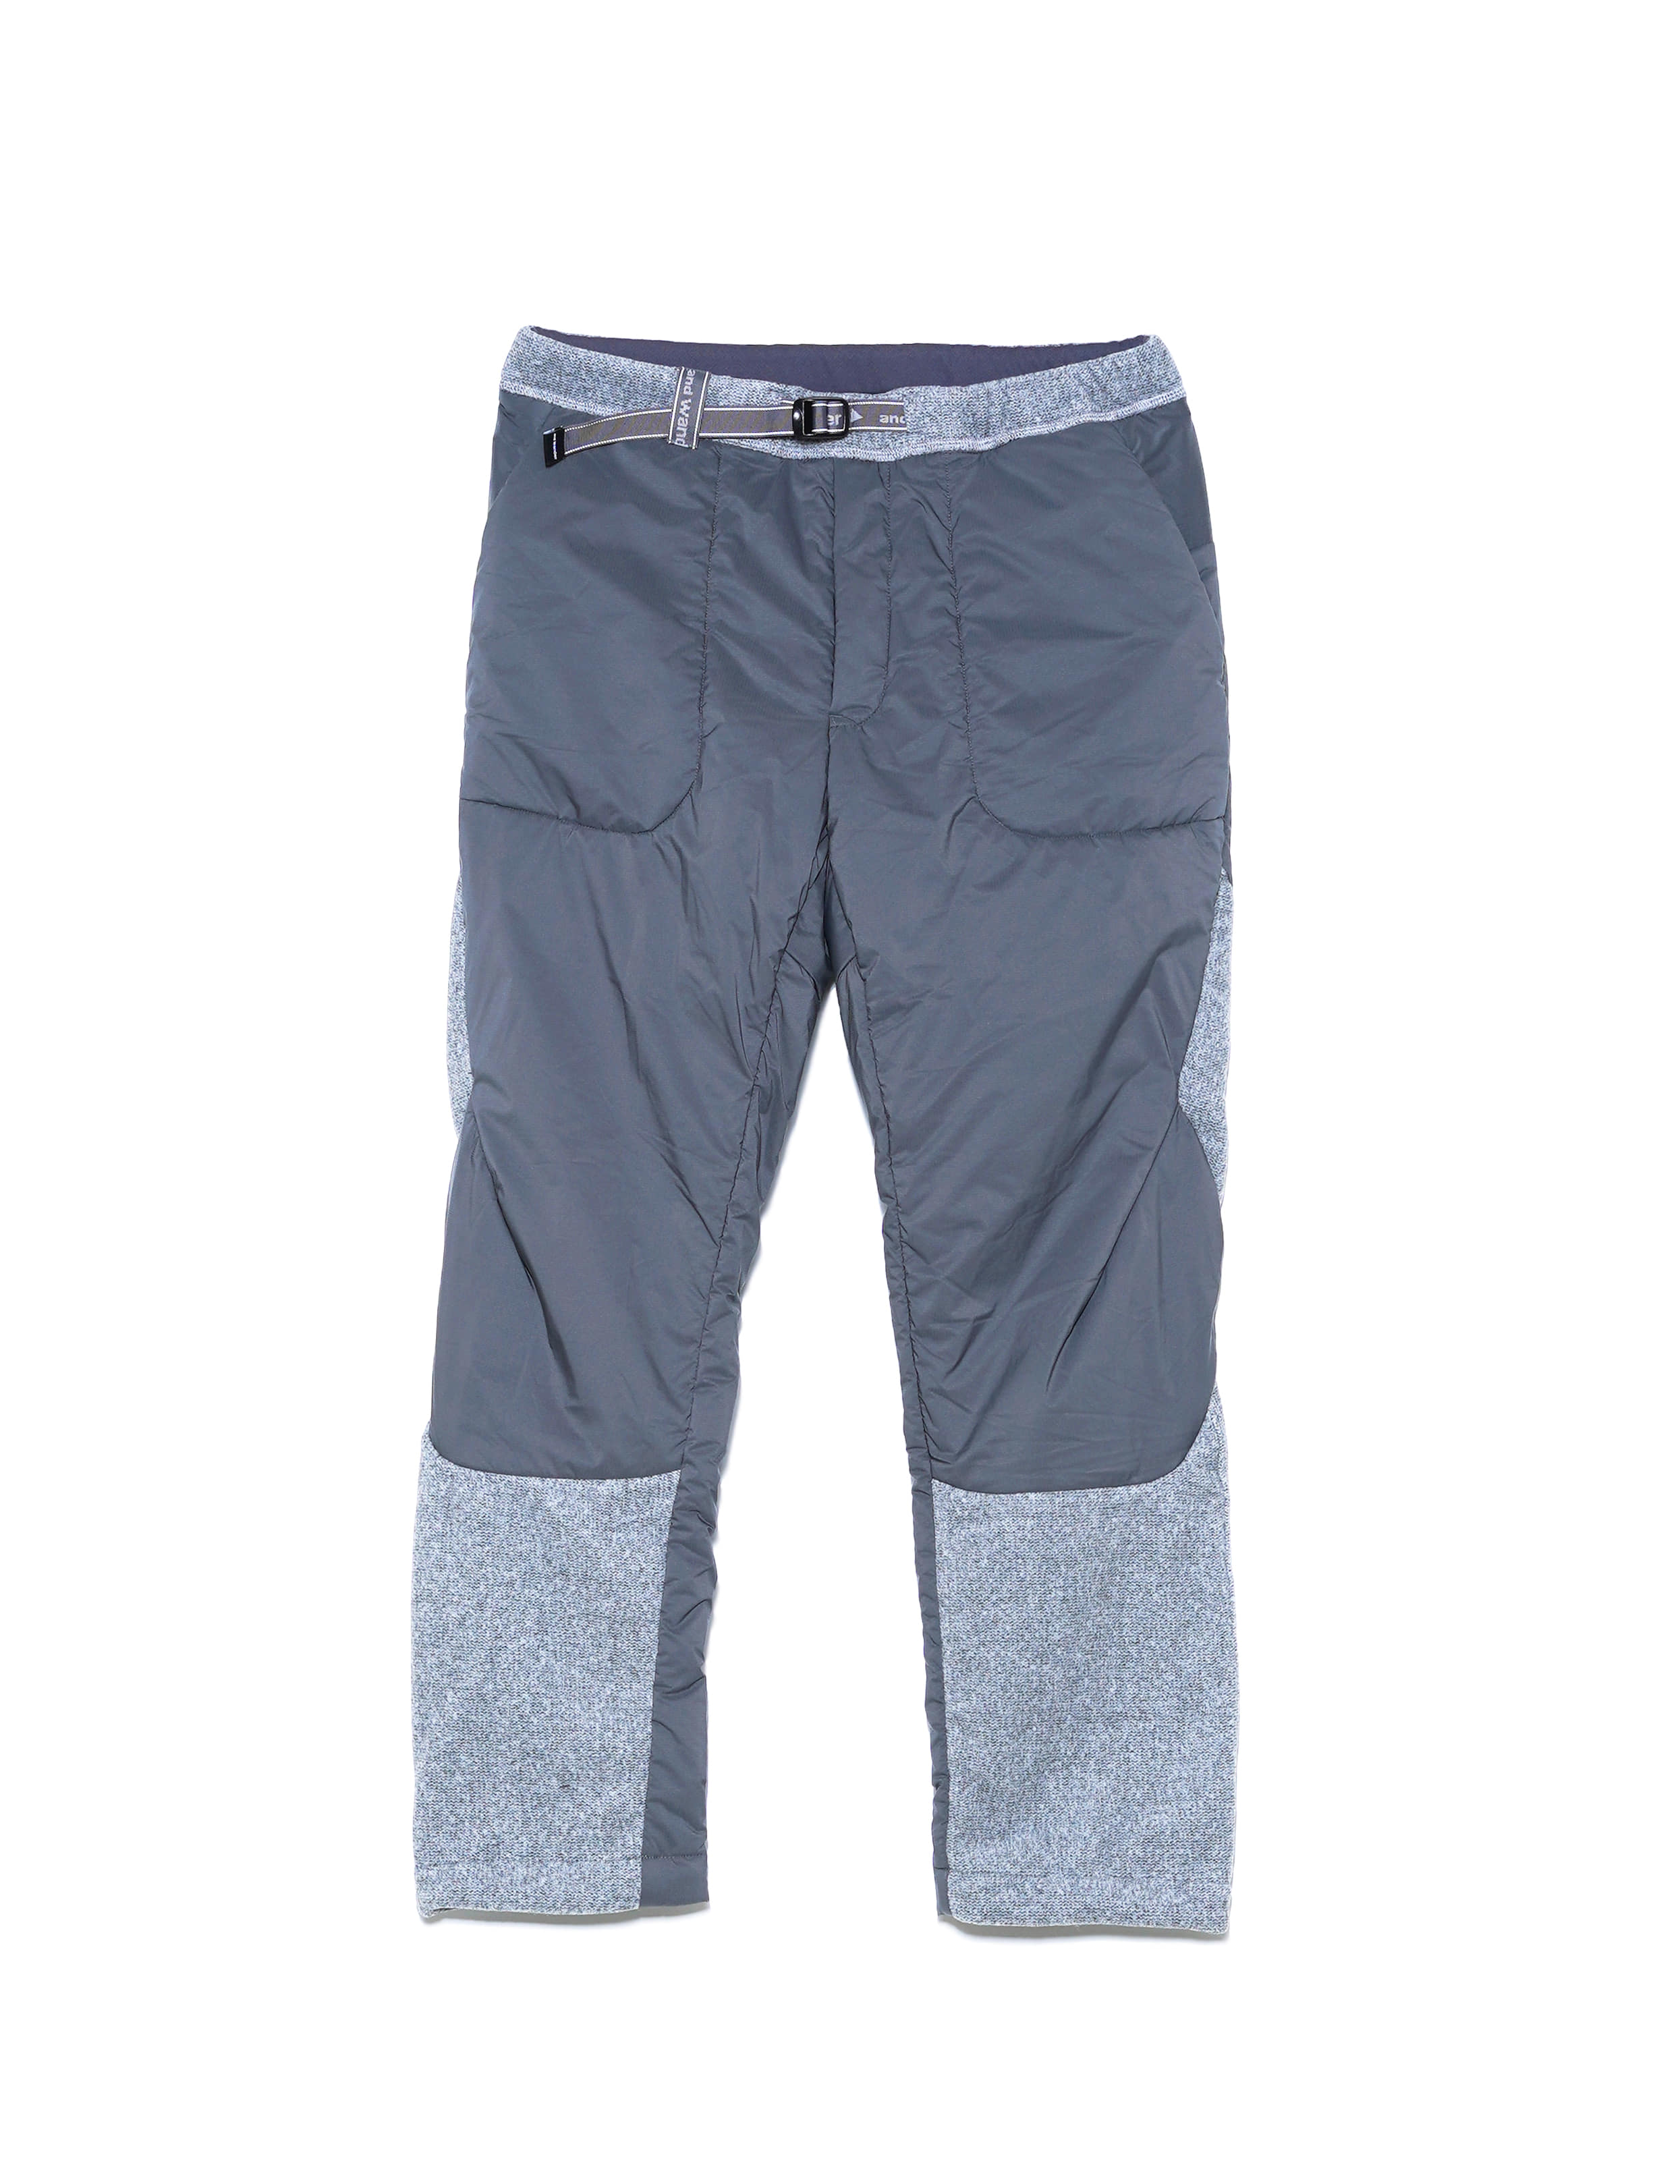 TOP FLEECE PANTS (GRAY)